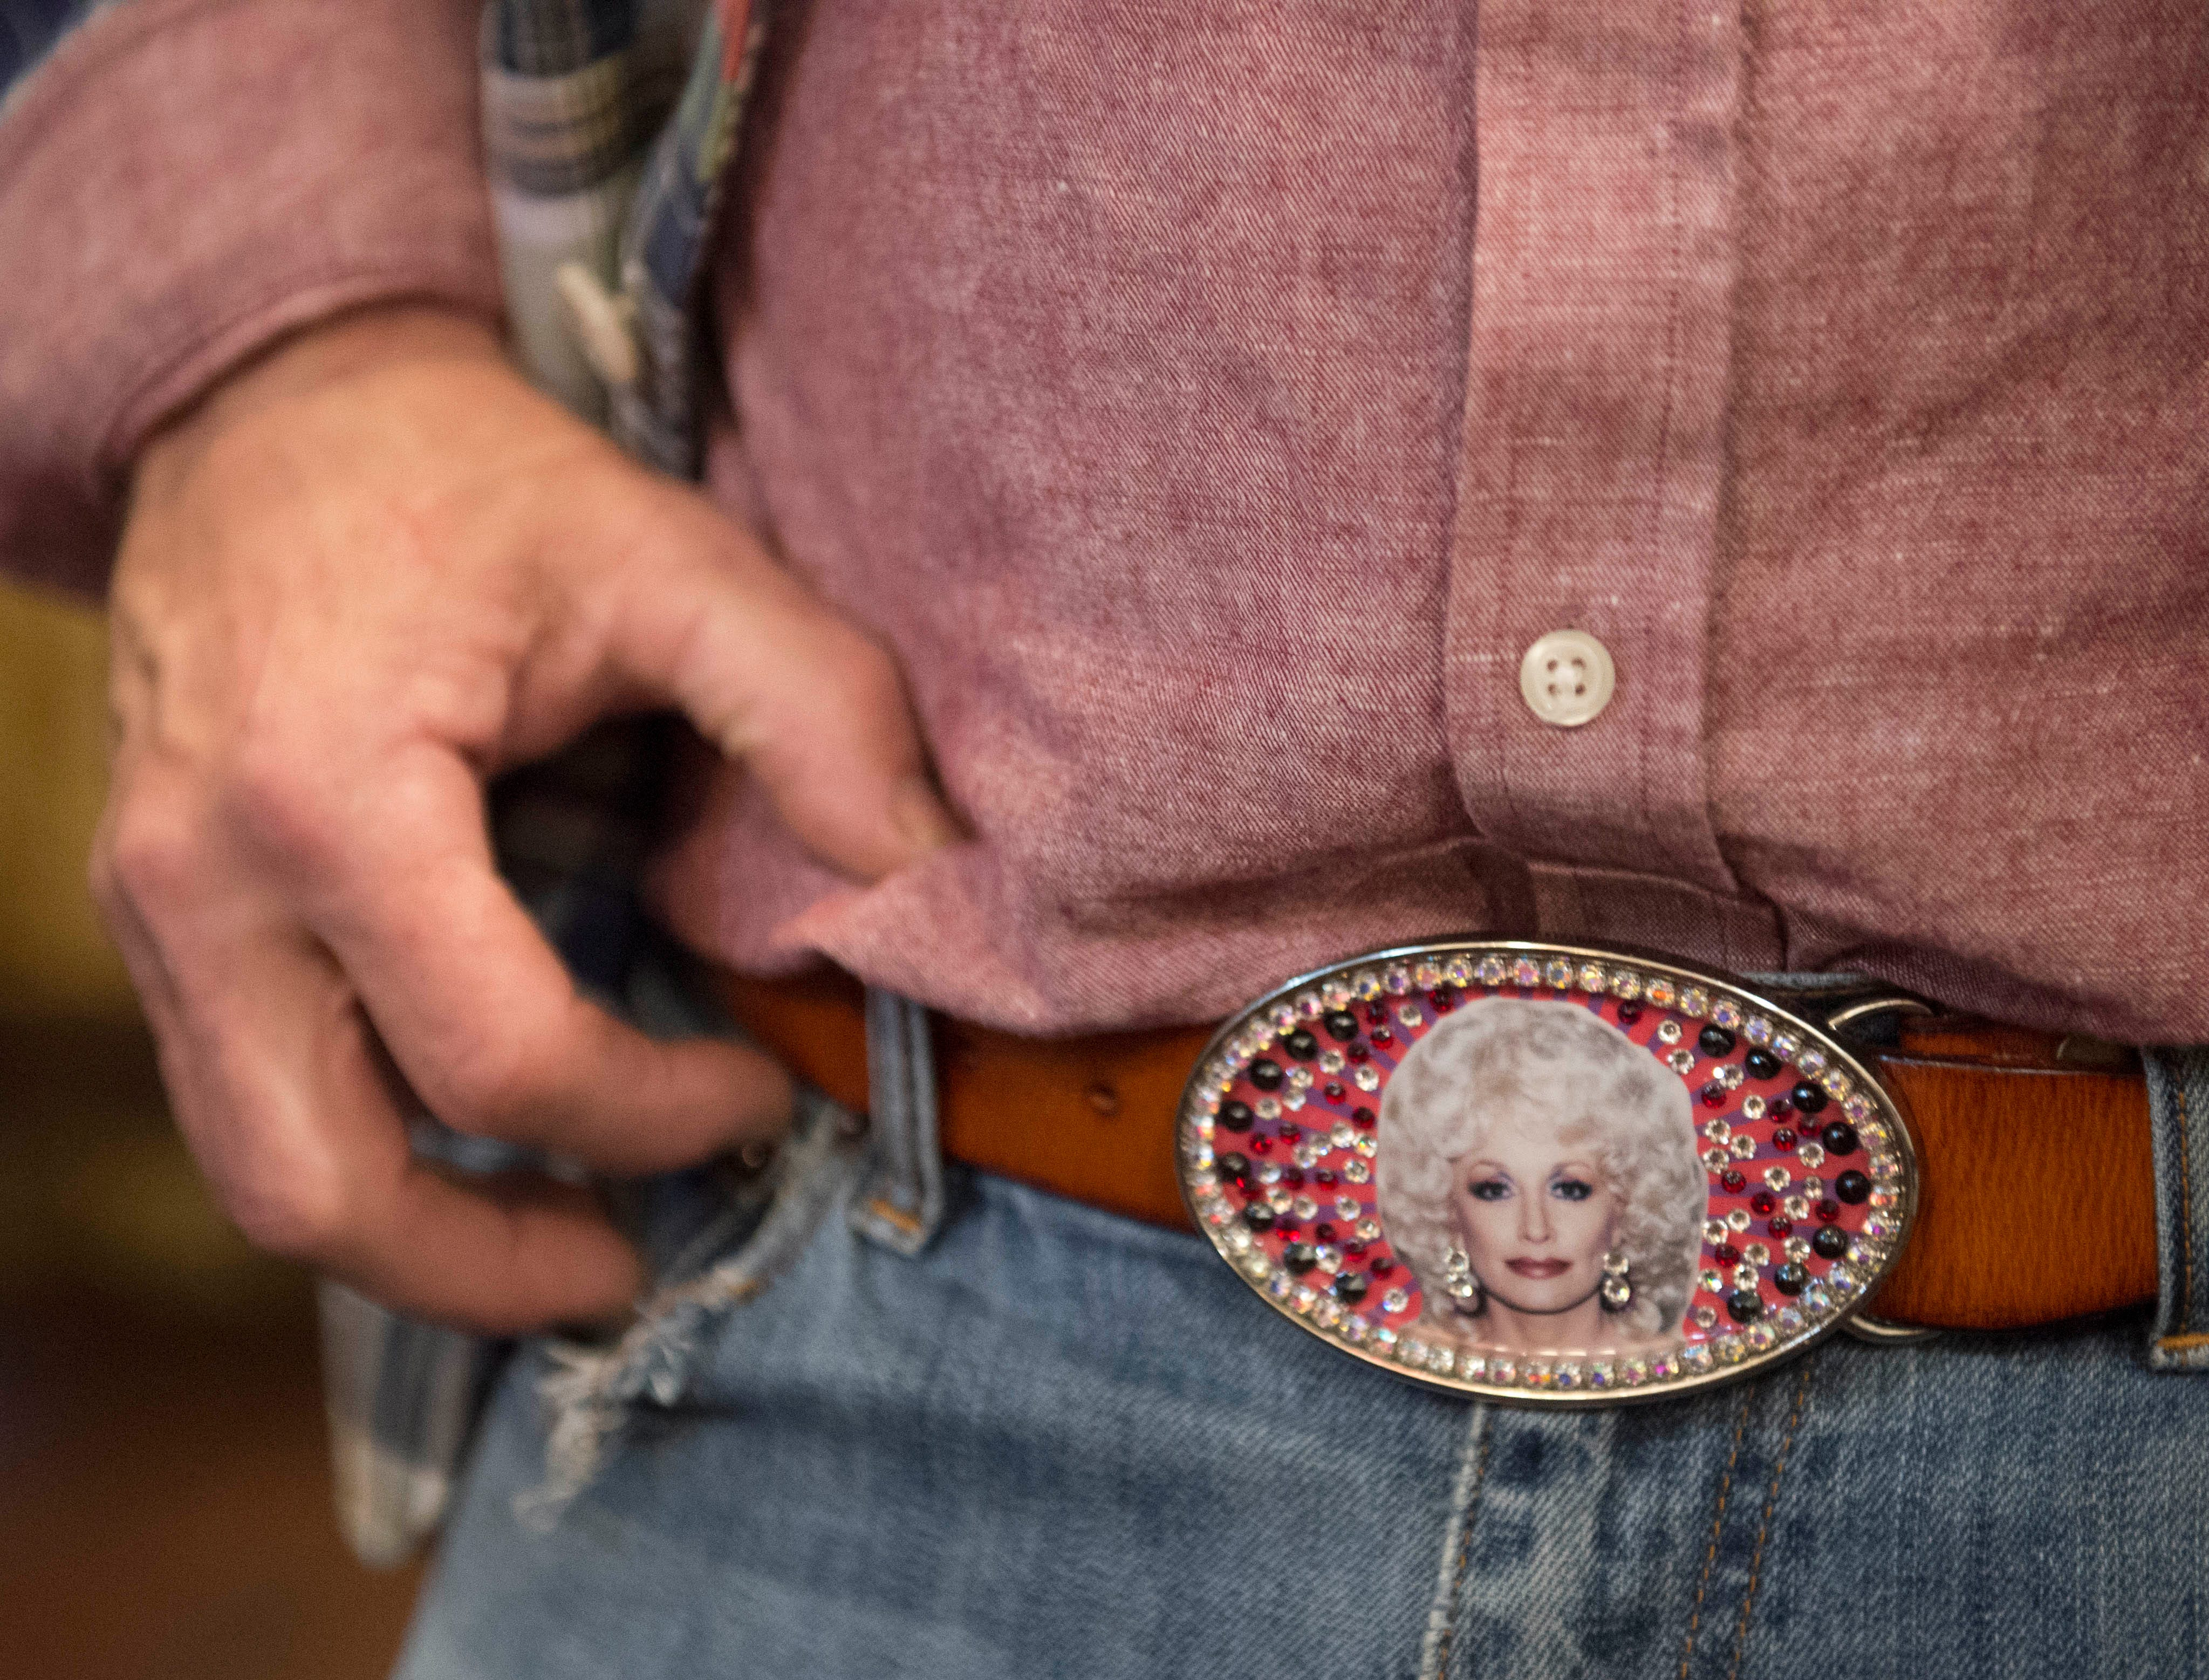 Woodworker Ed Madden of Bay St. Louis dons a belt buckle emblazoned with the image of Dolly Parton. The birthday of the famous songstress and actress is celebrated at the annual Dolly Should event in Bay St. Louis with the hopes Parton will visit the town. Saturday, Jan. 12, 2019.